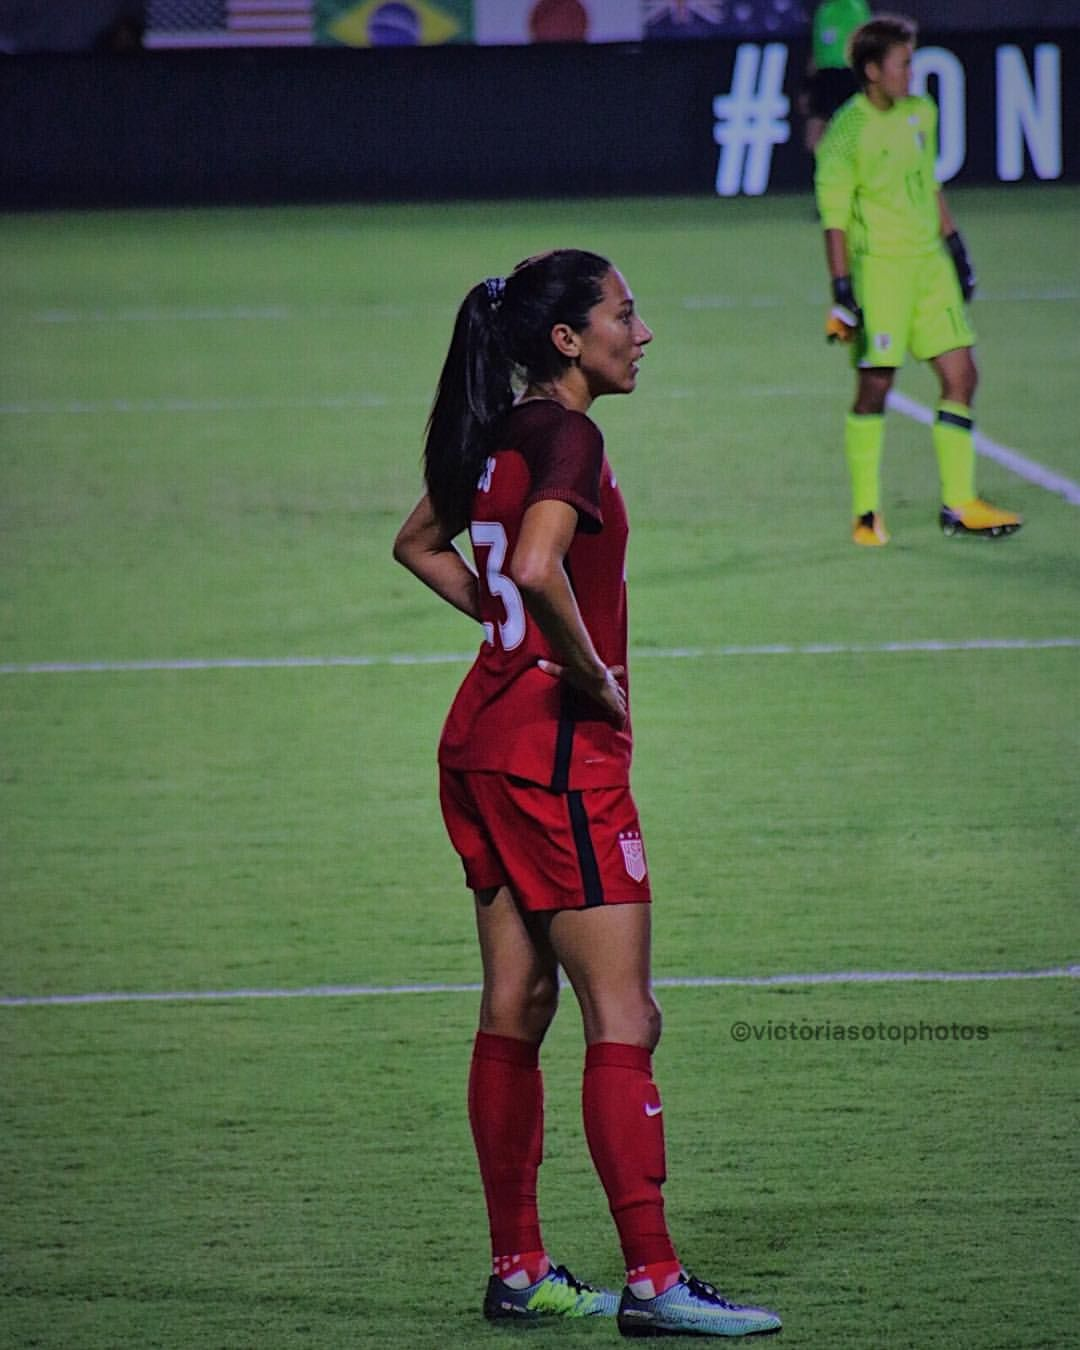 Christen Press Usa 3 0 Jpn Ton Aug 3 2017 Women S Soccer Team Uswnt Soccer Football Girls